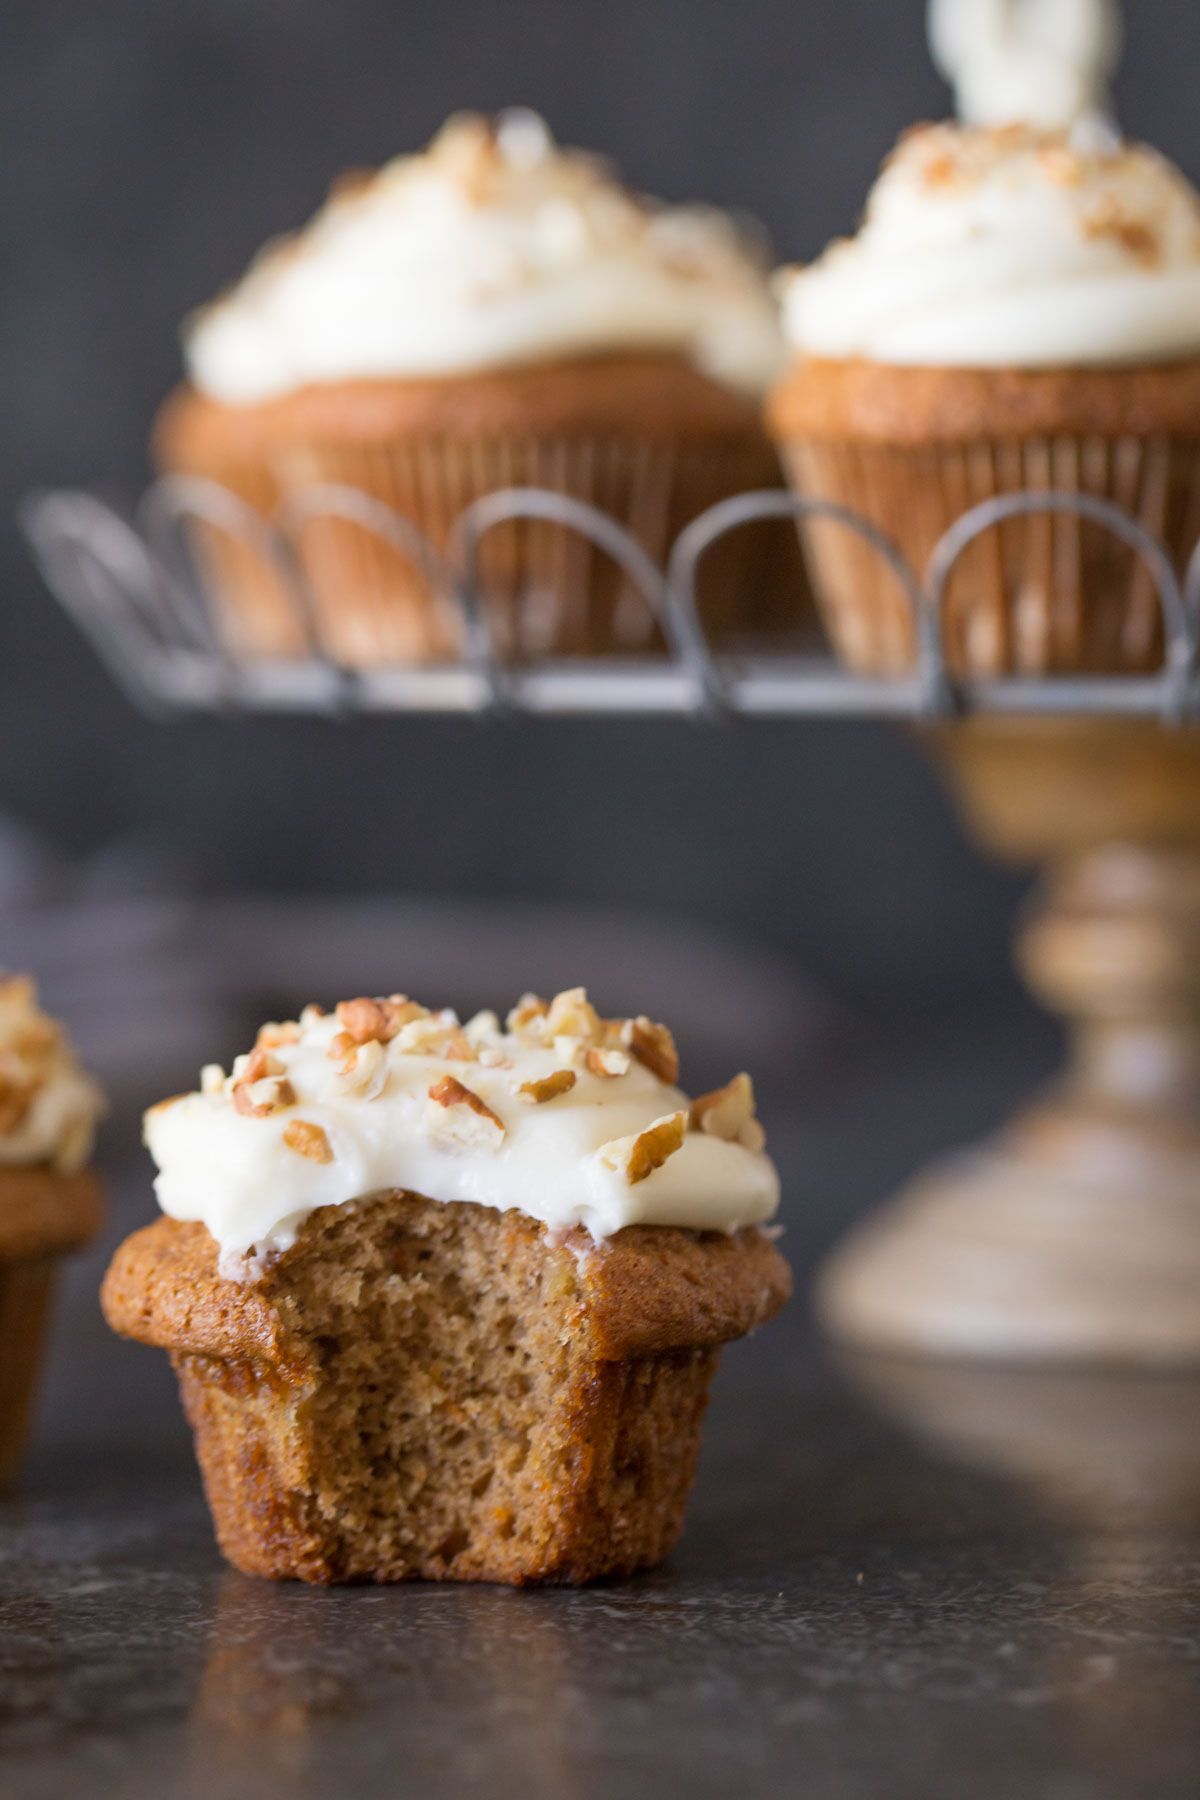 A Carrot Cake Cupcake with a bite taken out of it, with more Carrot Cake Cupcakes on a cake stand in the background.